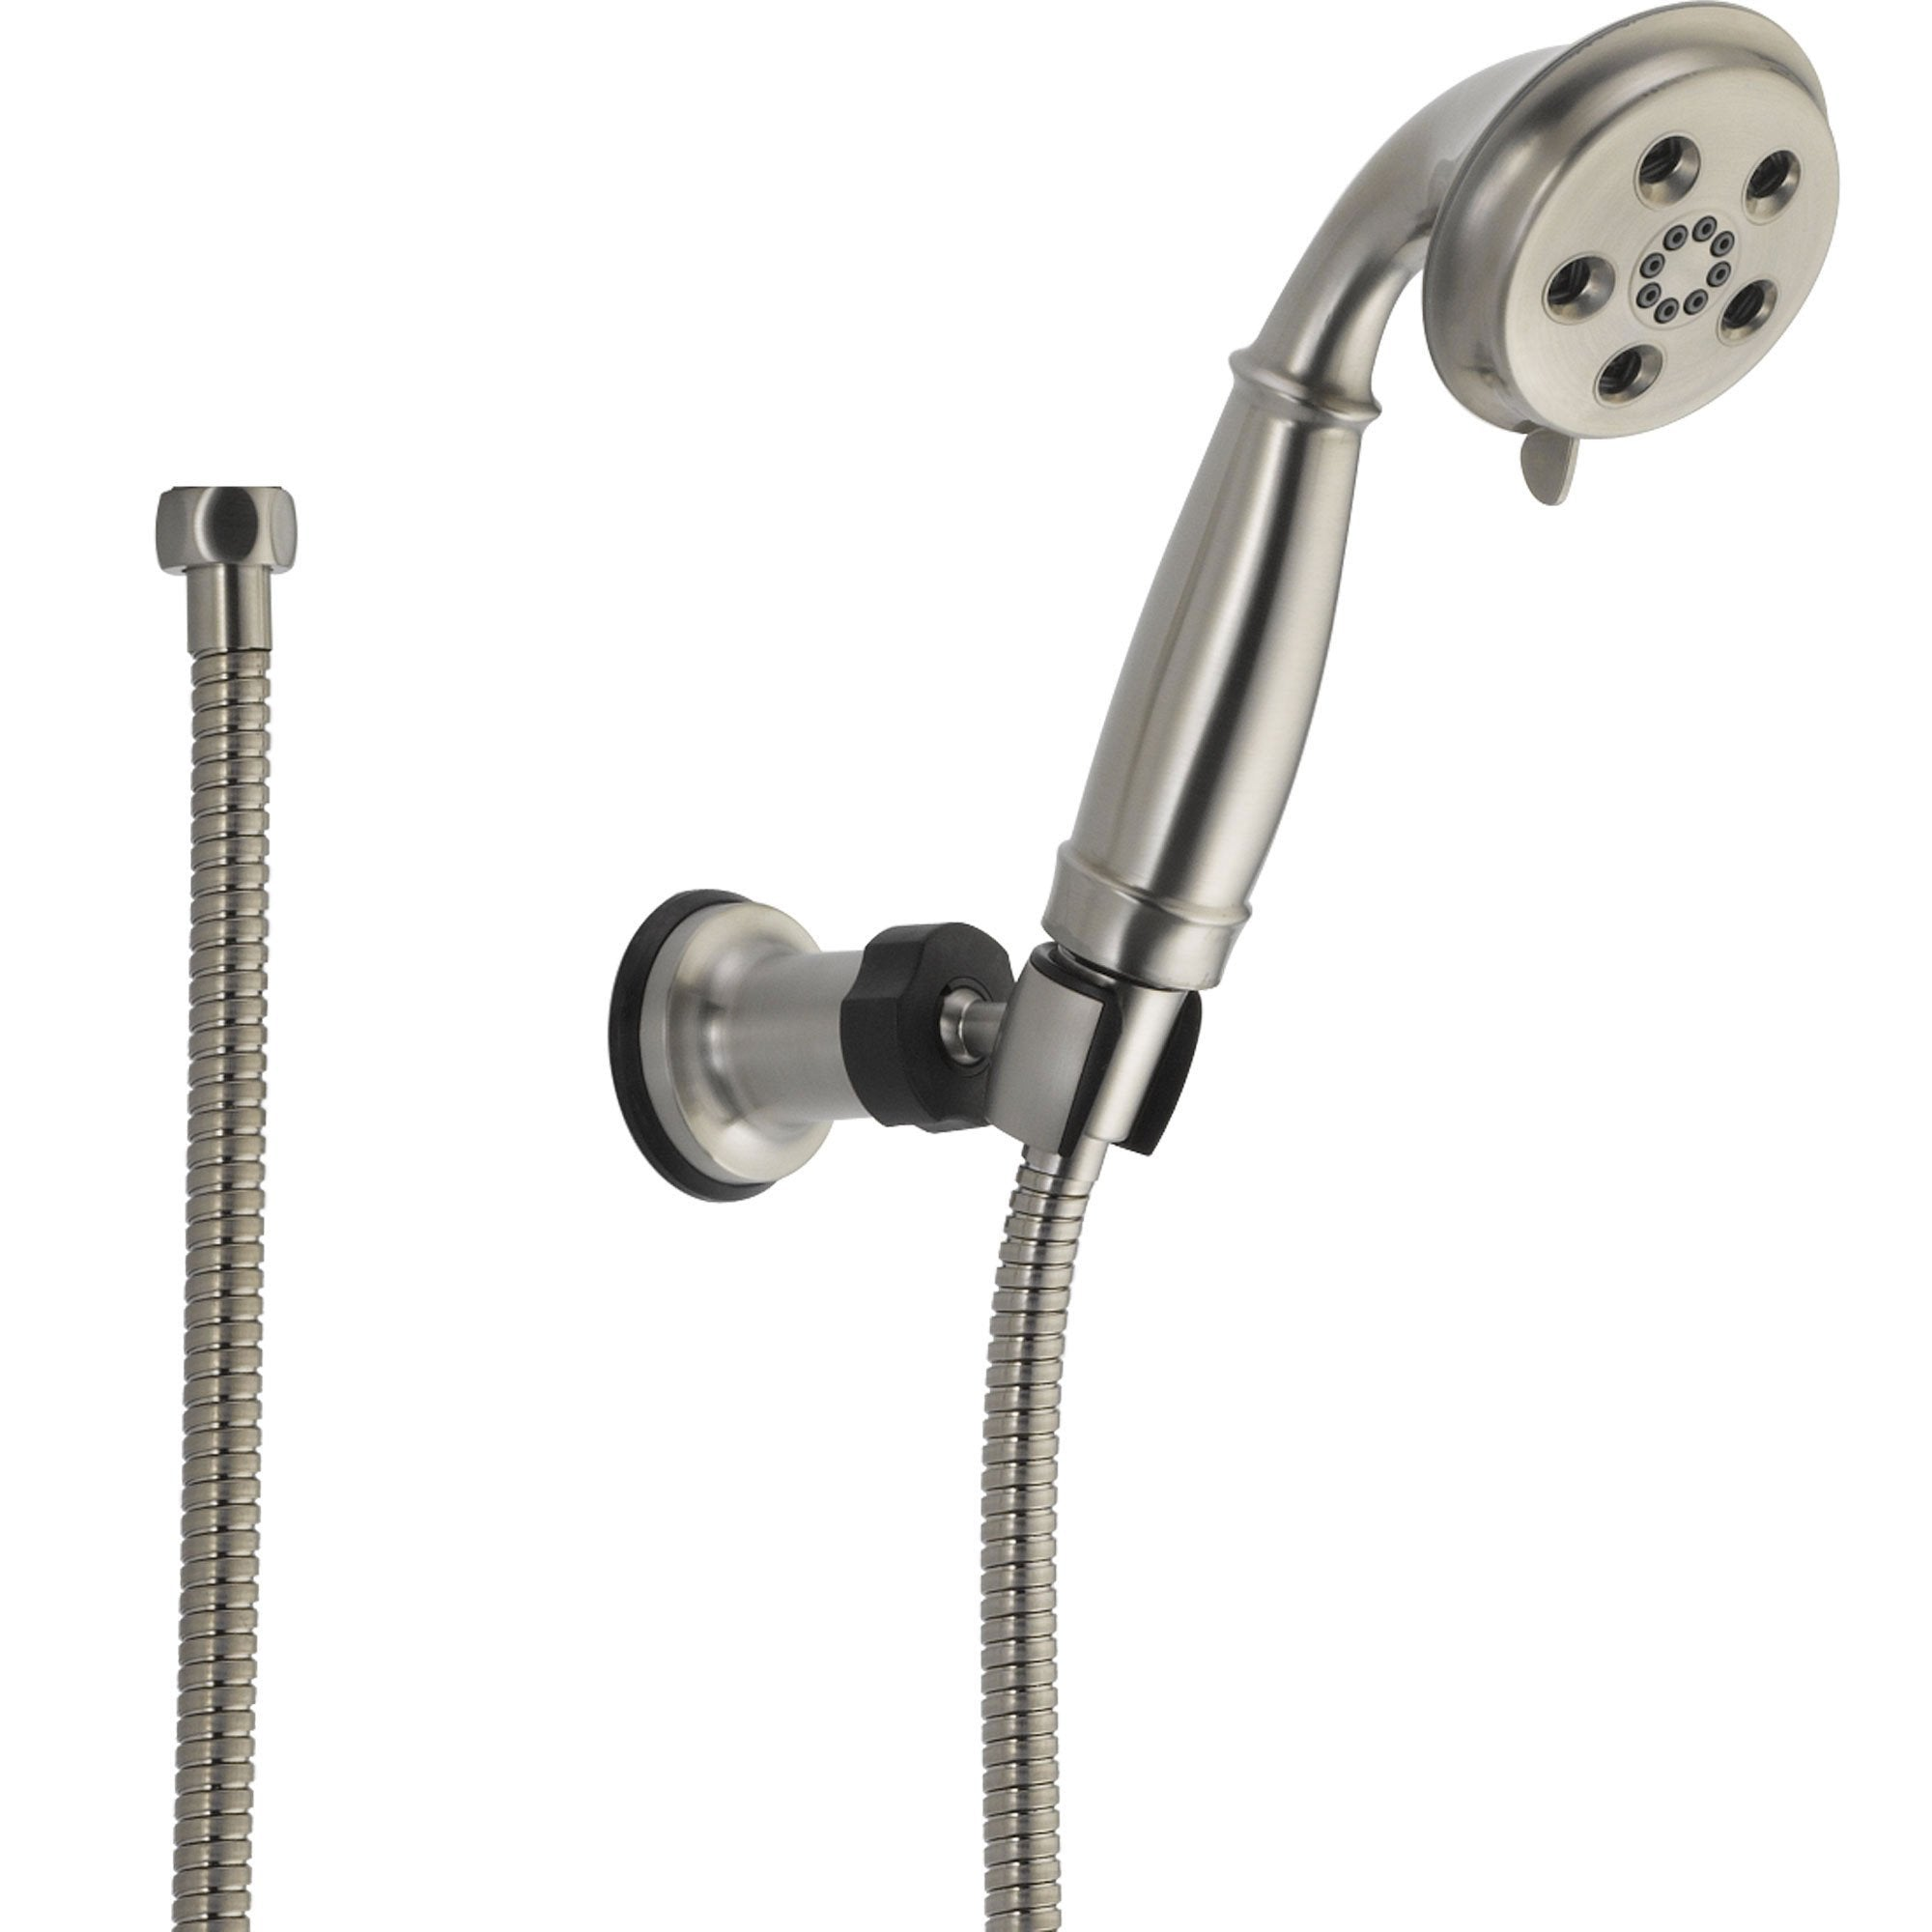 Delta Stainless Steel Finish Wall Mount Handshower Spray with H2Okinetic 604282